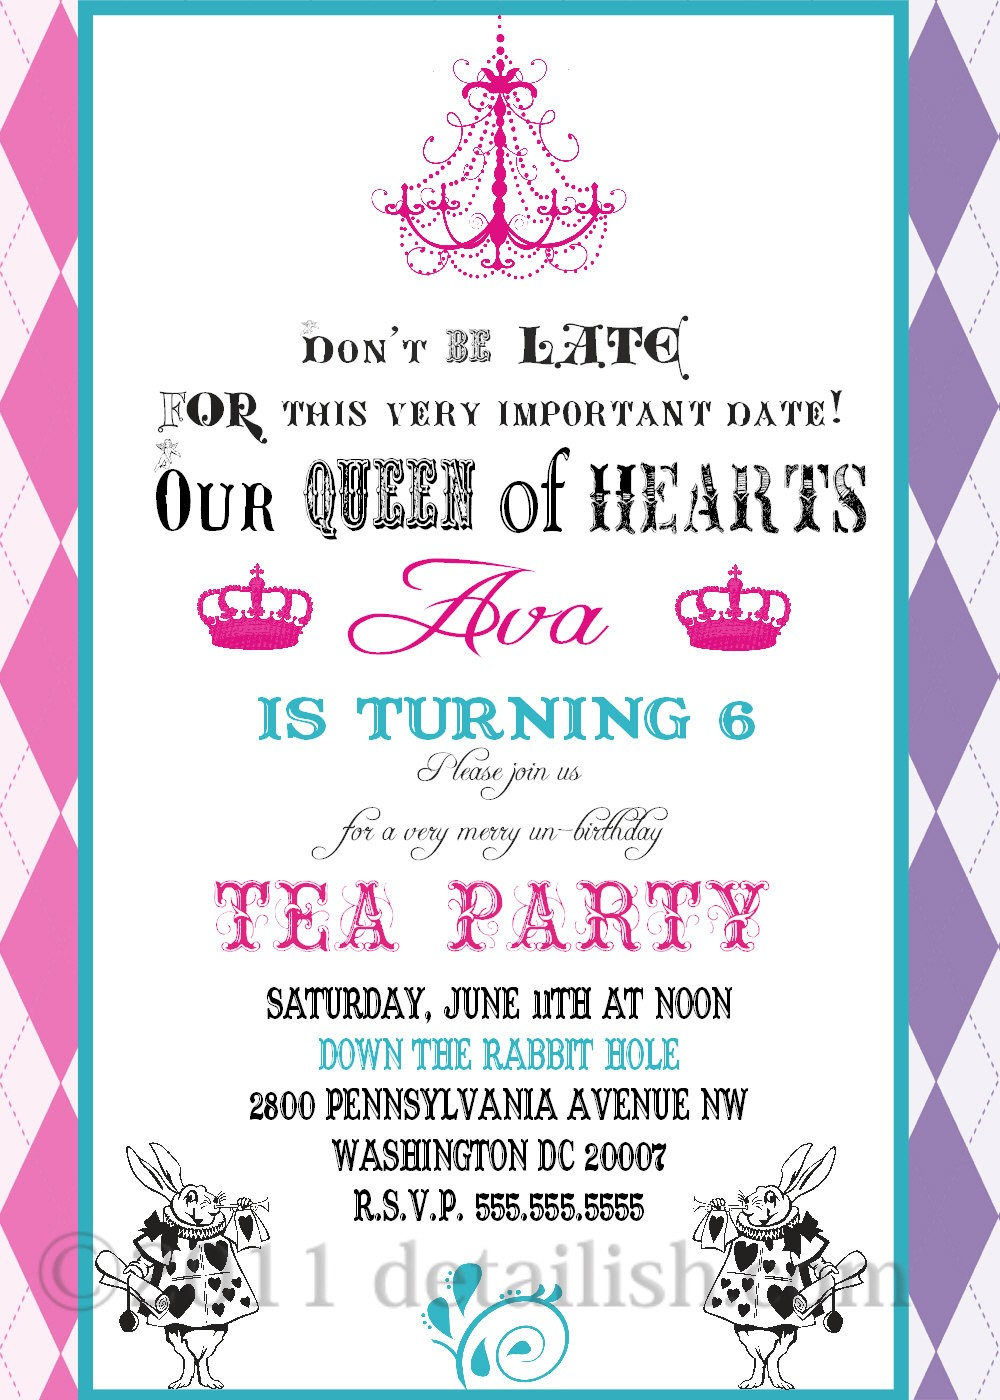 Sample Party Invitation: Sample Party Invitation Sample Party Invitation 51  For Card ...  Gathering Invitation Sample